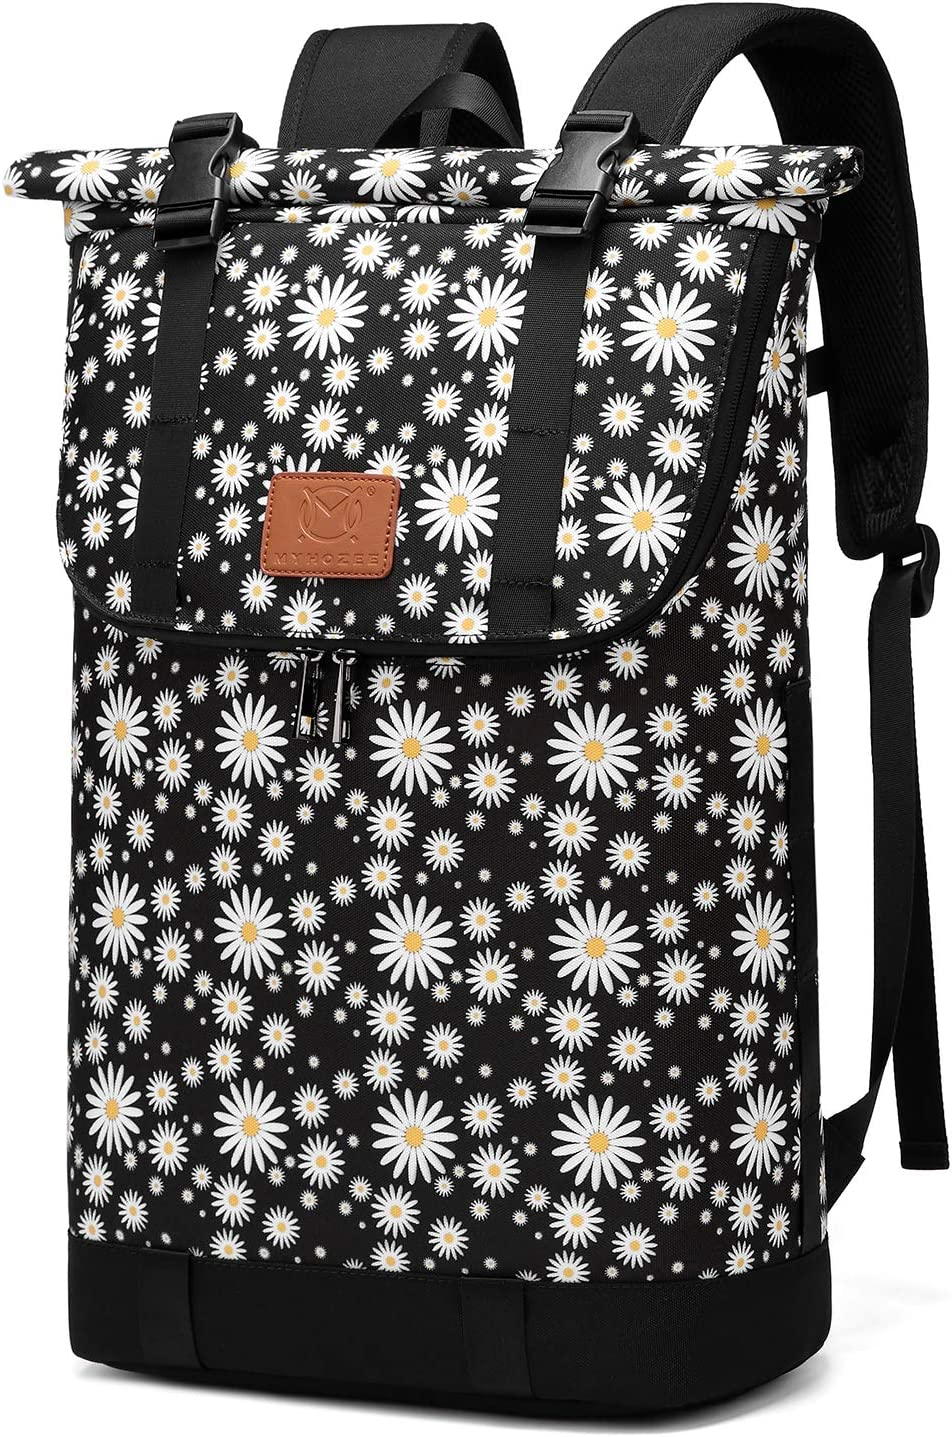 30L Roll-top Hiking Backpack, Travel Packable Laptop Daypack Camera Daypack School Bag for Running, Hiking, Cycling, Camping, Fits 15.6 Inch Notebook (Chrysanthemum)